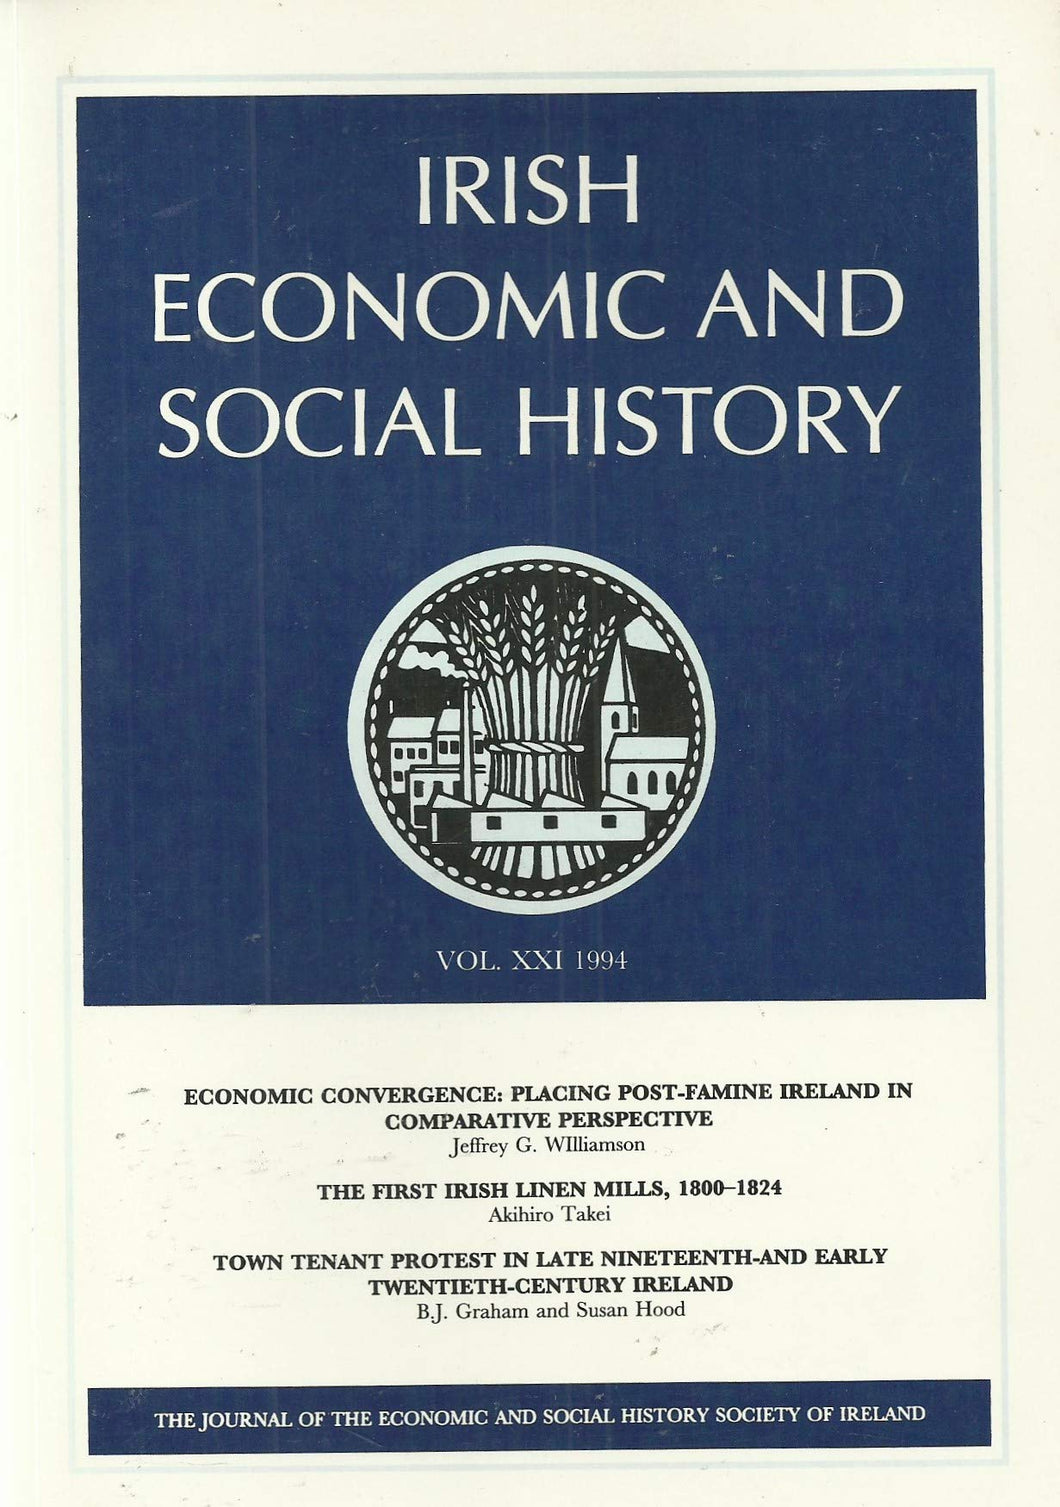 Irish Economic and Social History - Vol XXI (21), 1994